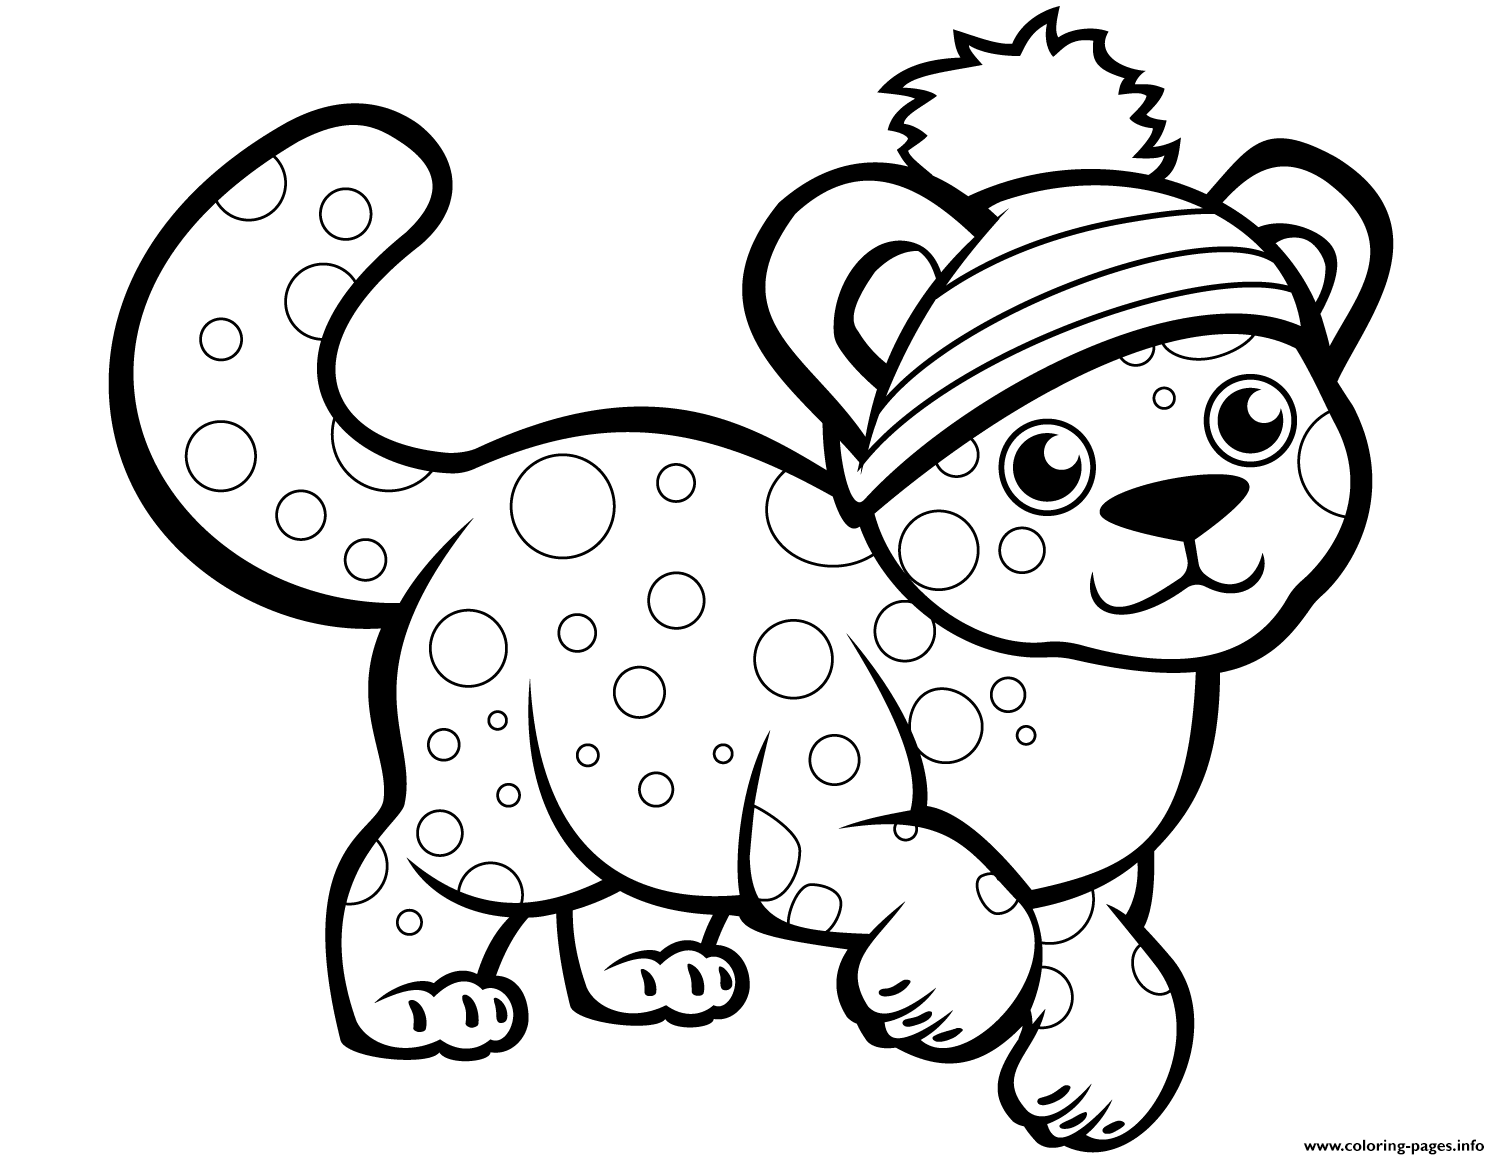 Cute Cheetah In Winter Hat Coloring Pages Printable